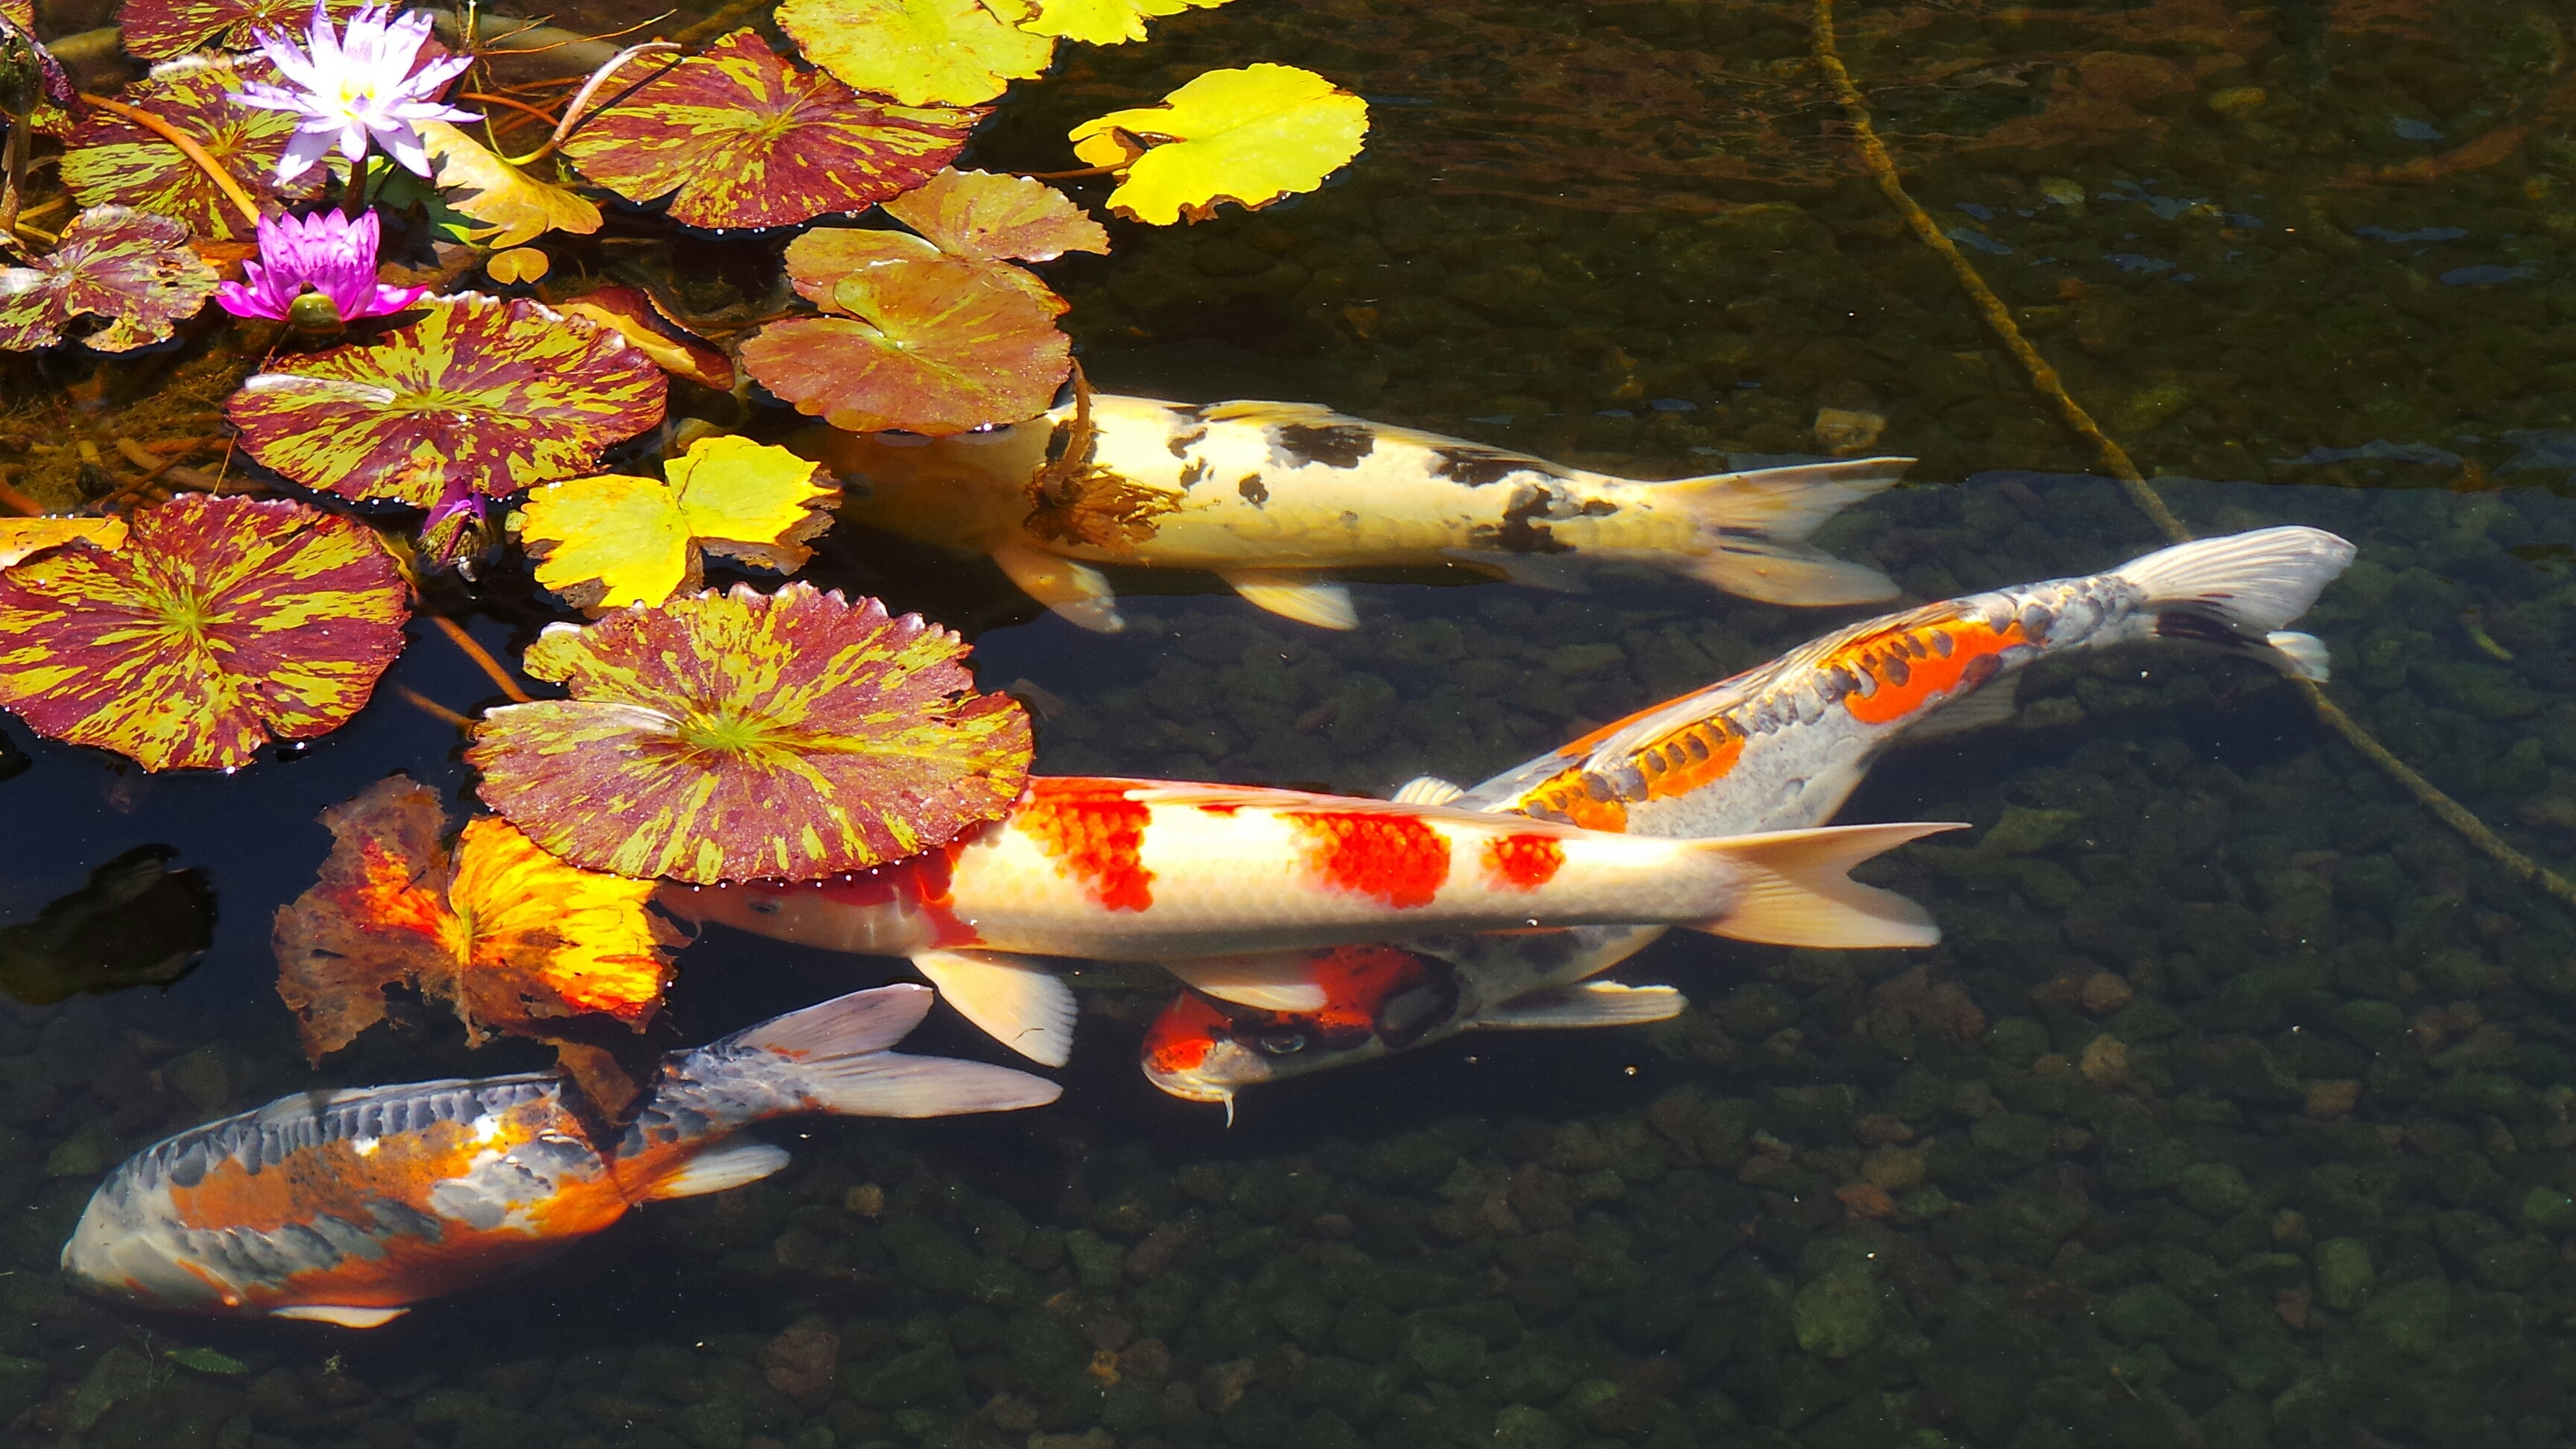 Guide to the fashion island koi ponds in newport beach for What is a koi pond